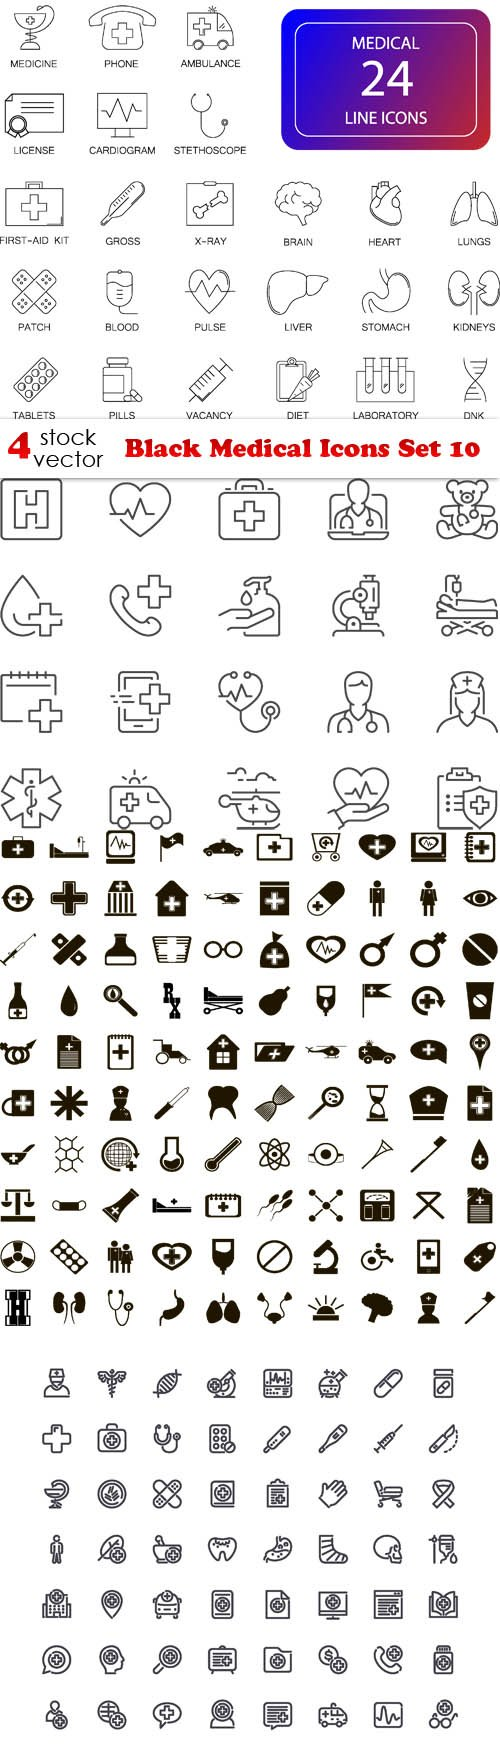 Vectors - Black Medical Icons Set 10